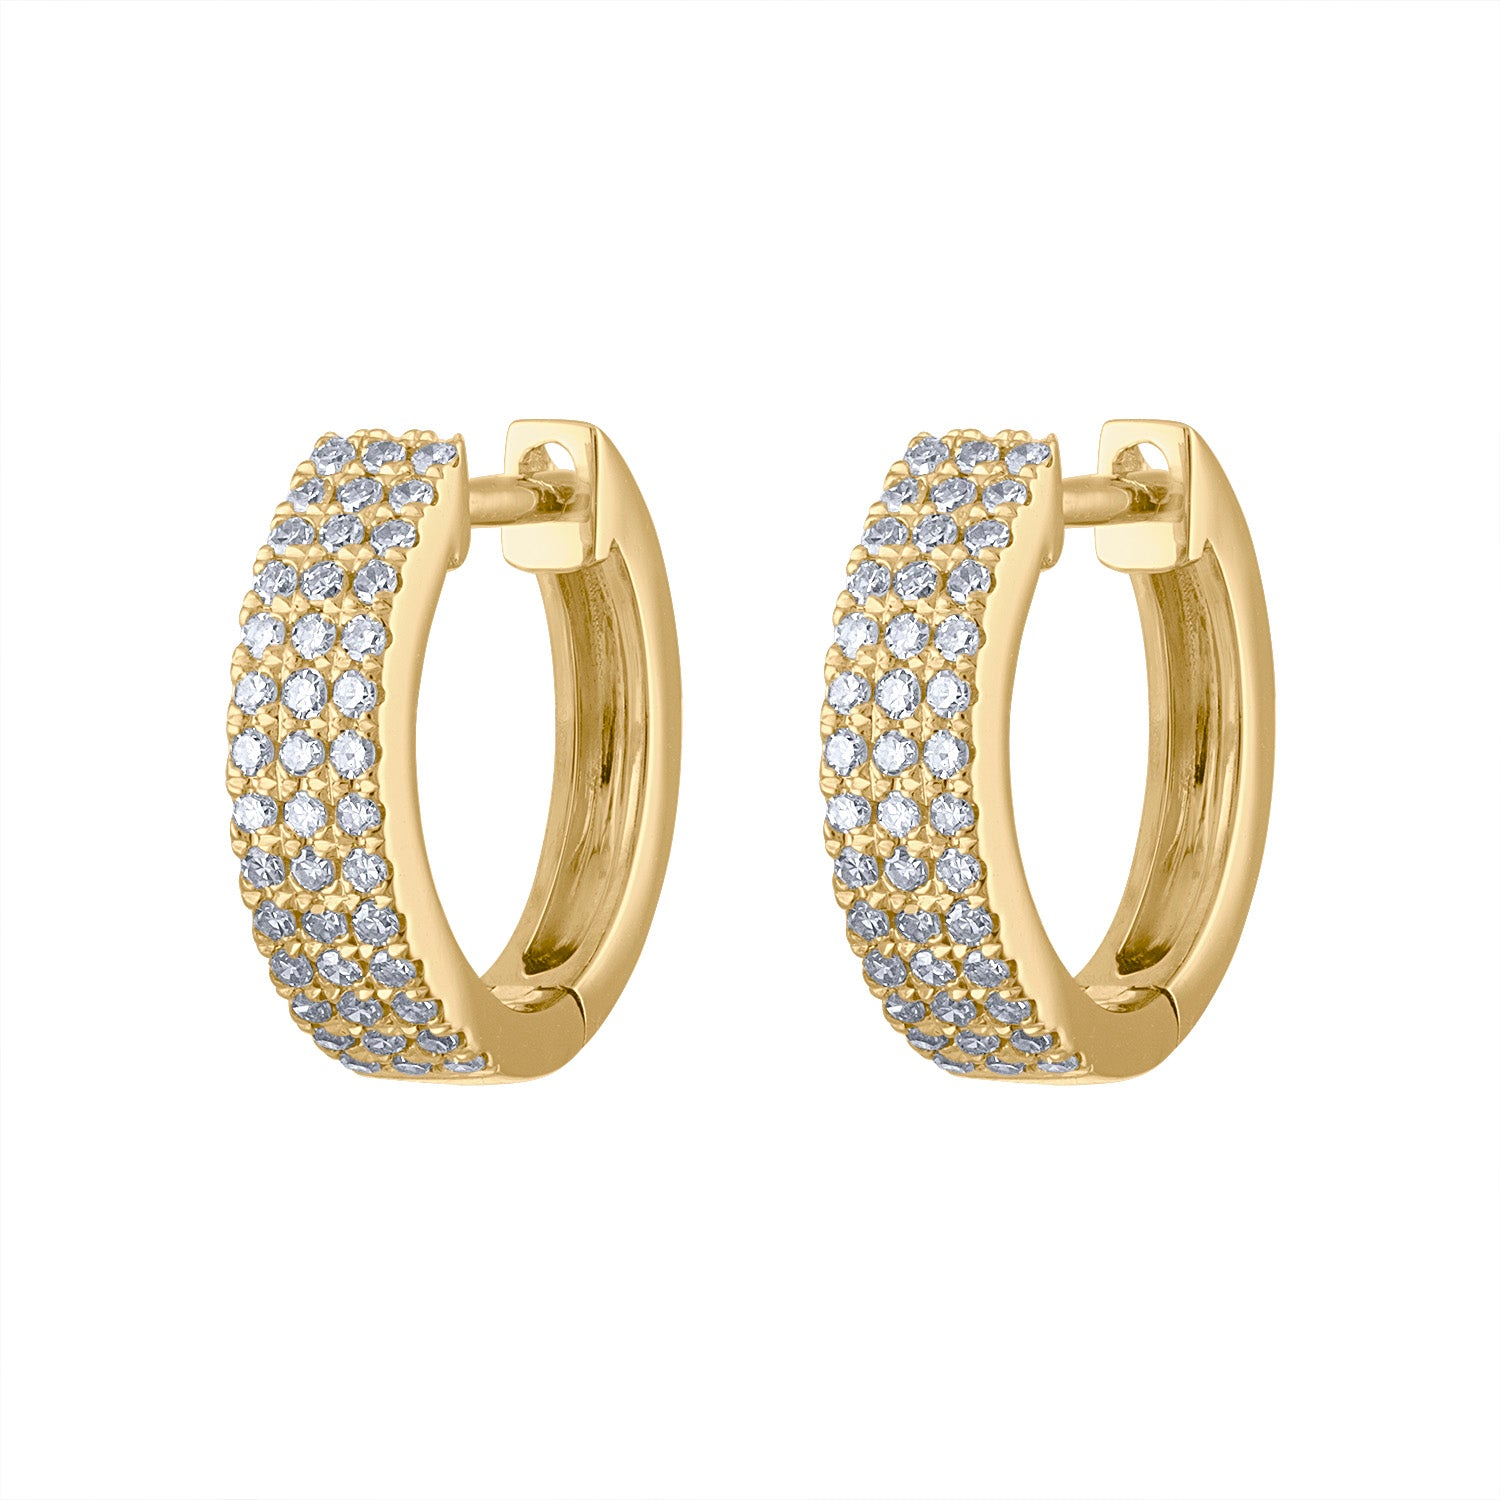 14KT GOLD THREE ROW PAVE DIAMOND HUGGIE EARRING